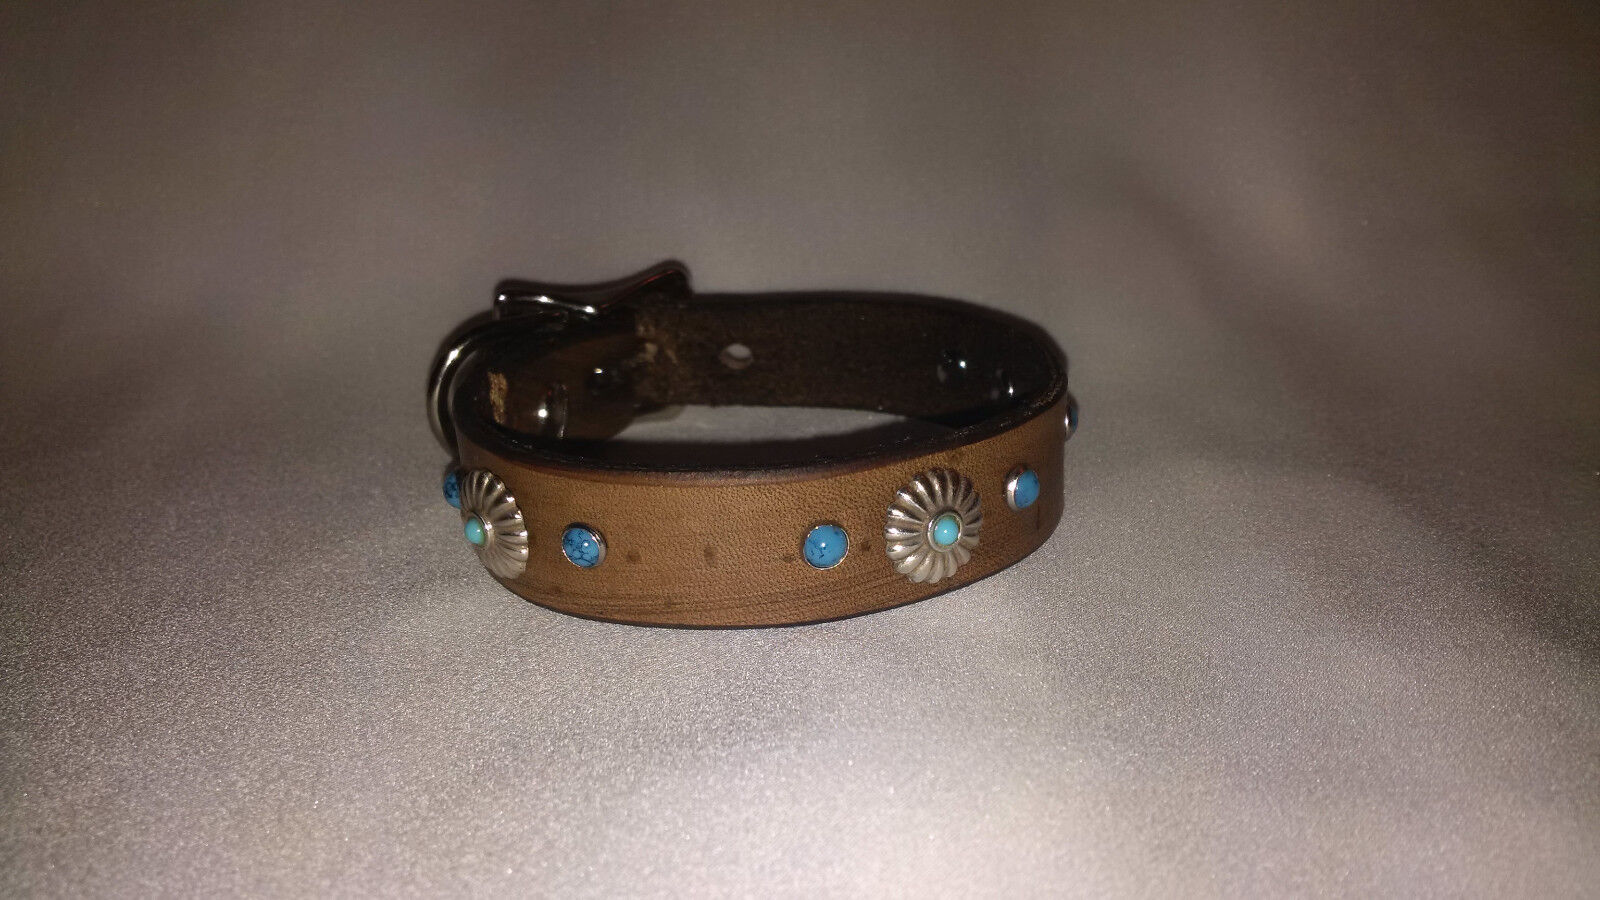 100% Leather Dog Collar for Small Dogs/ Turquoise stones and